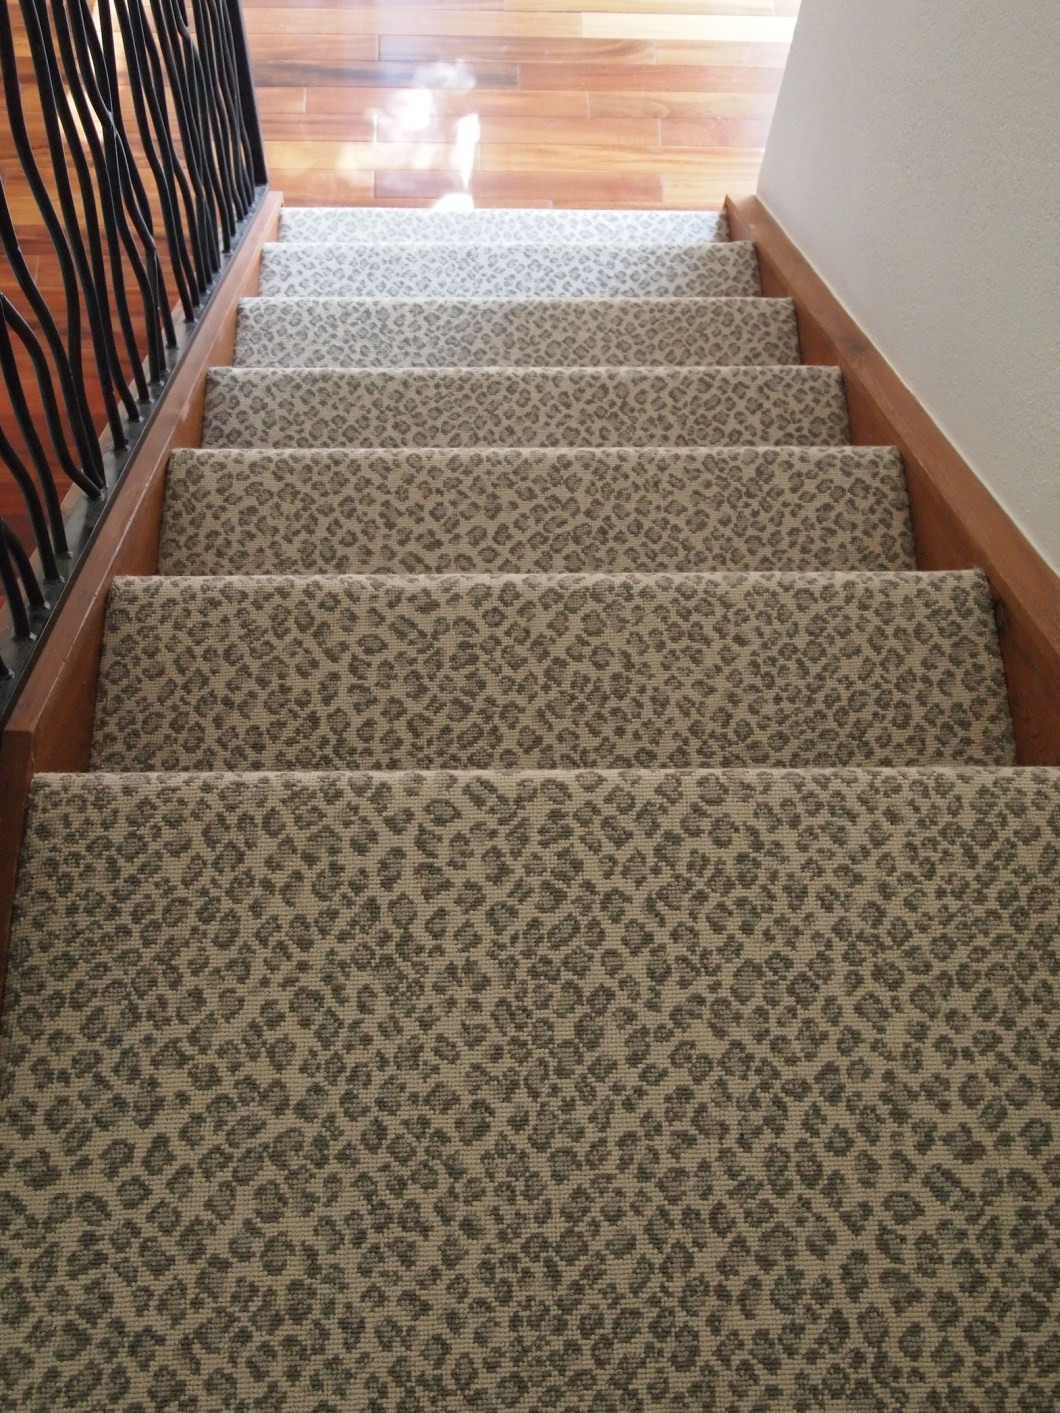 Leopard Carpet Wall To Wall : Animal print carpeting allaboutyouth